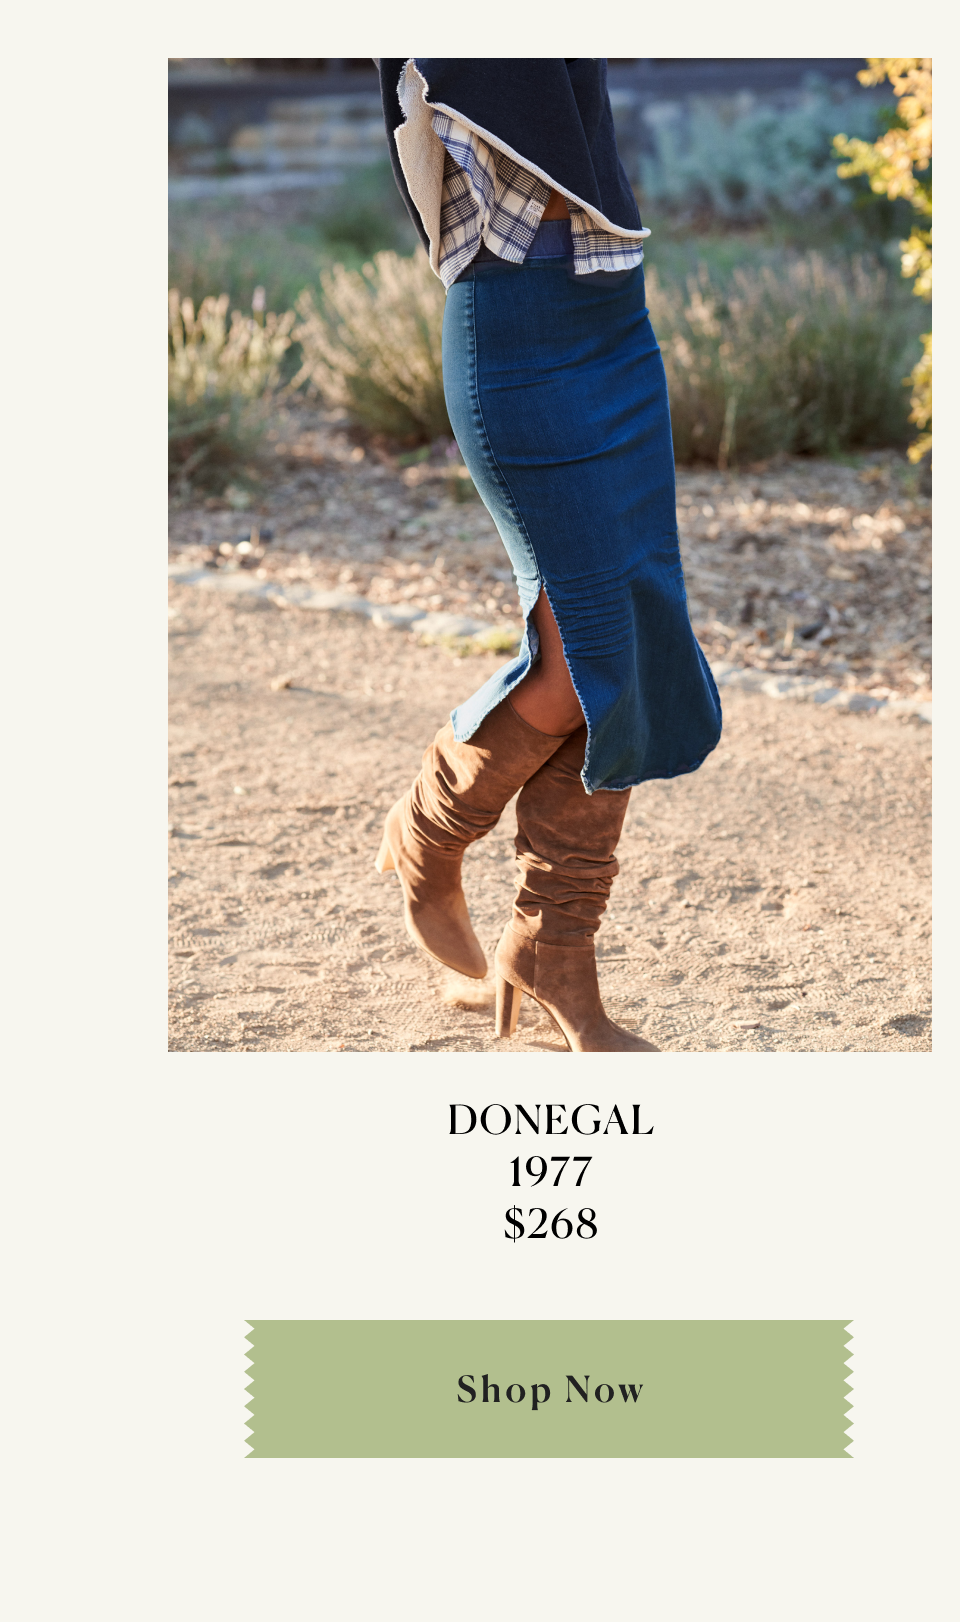 Donegal, 1977 $268